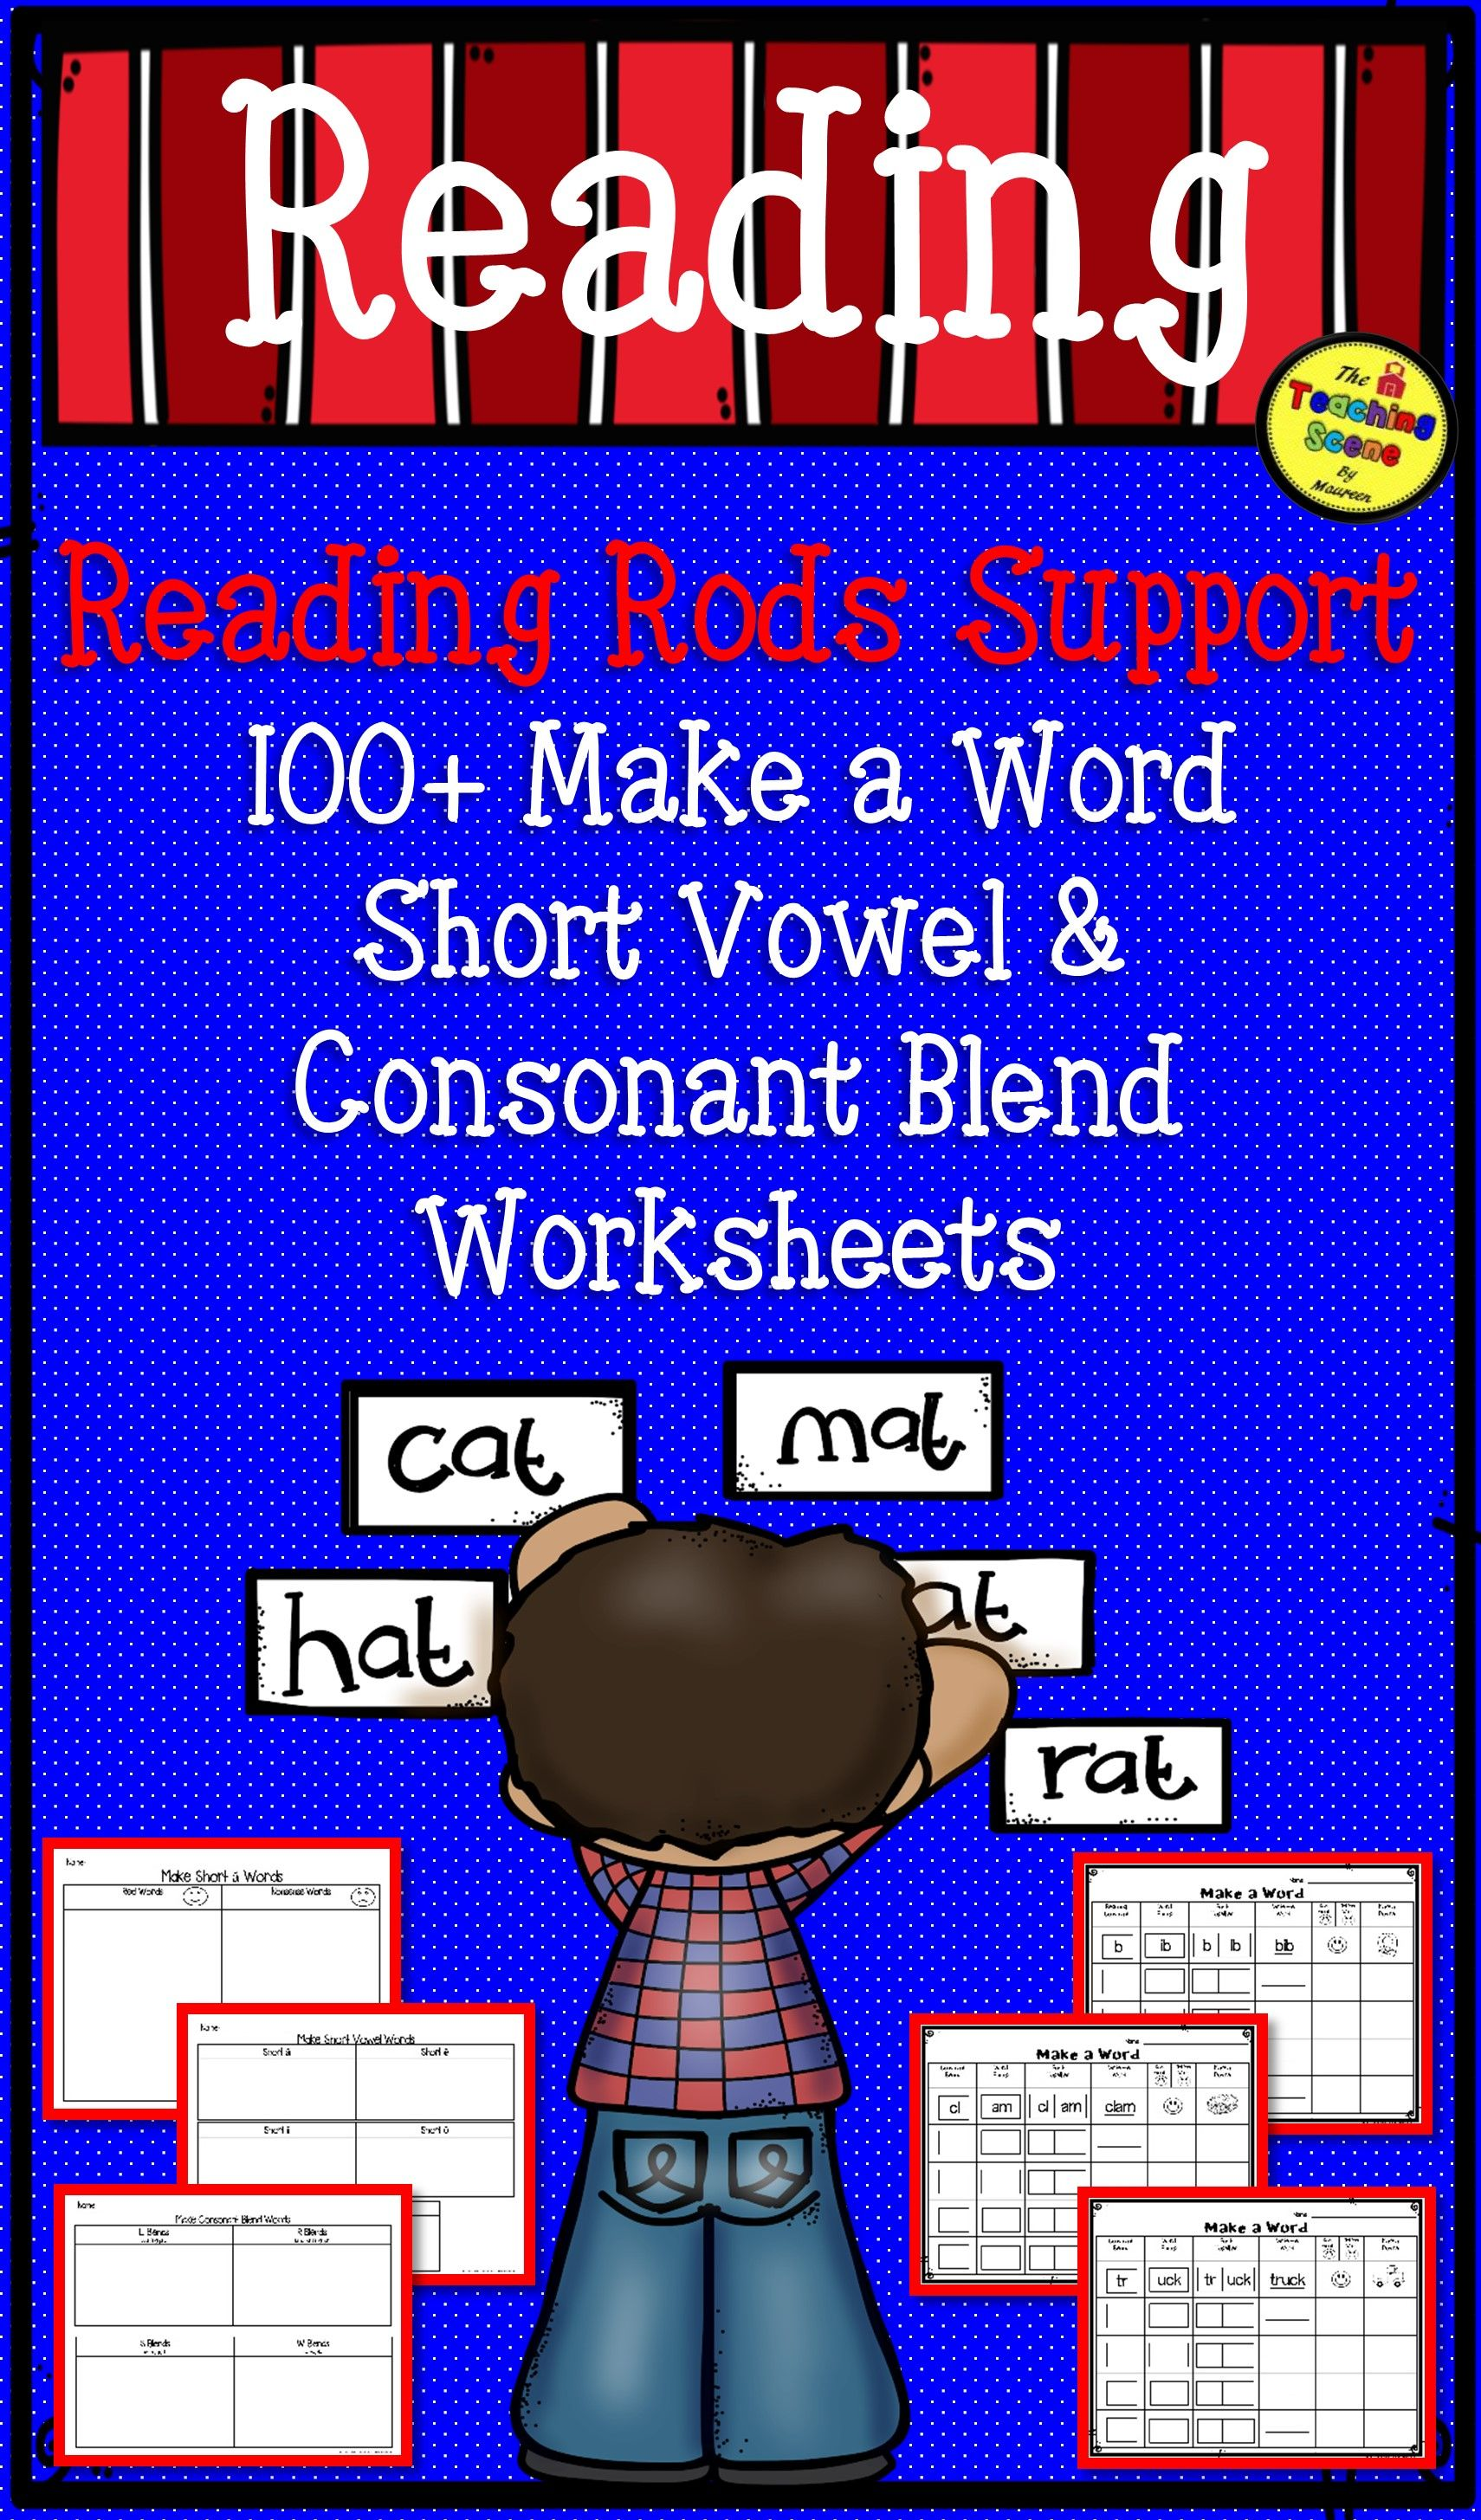 Reading Rods Or Tiles Support Make A Word Phonics